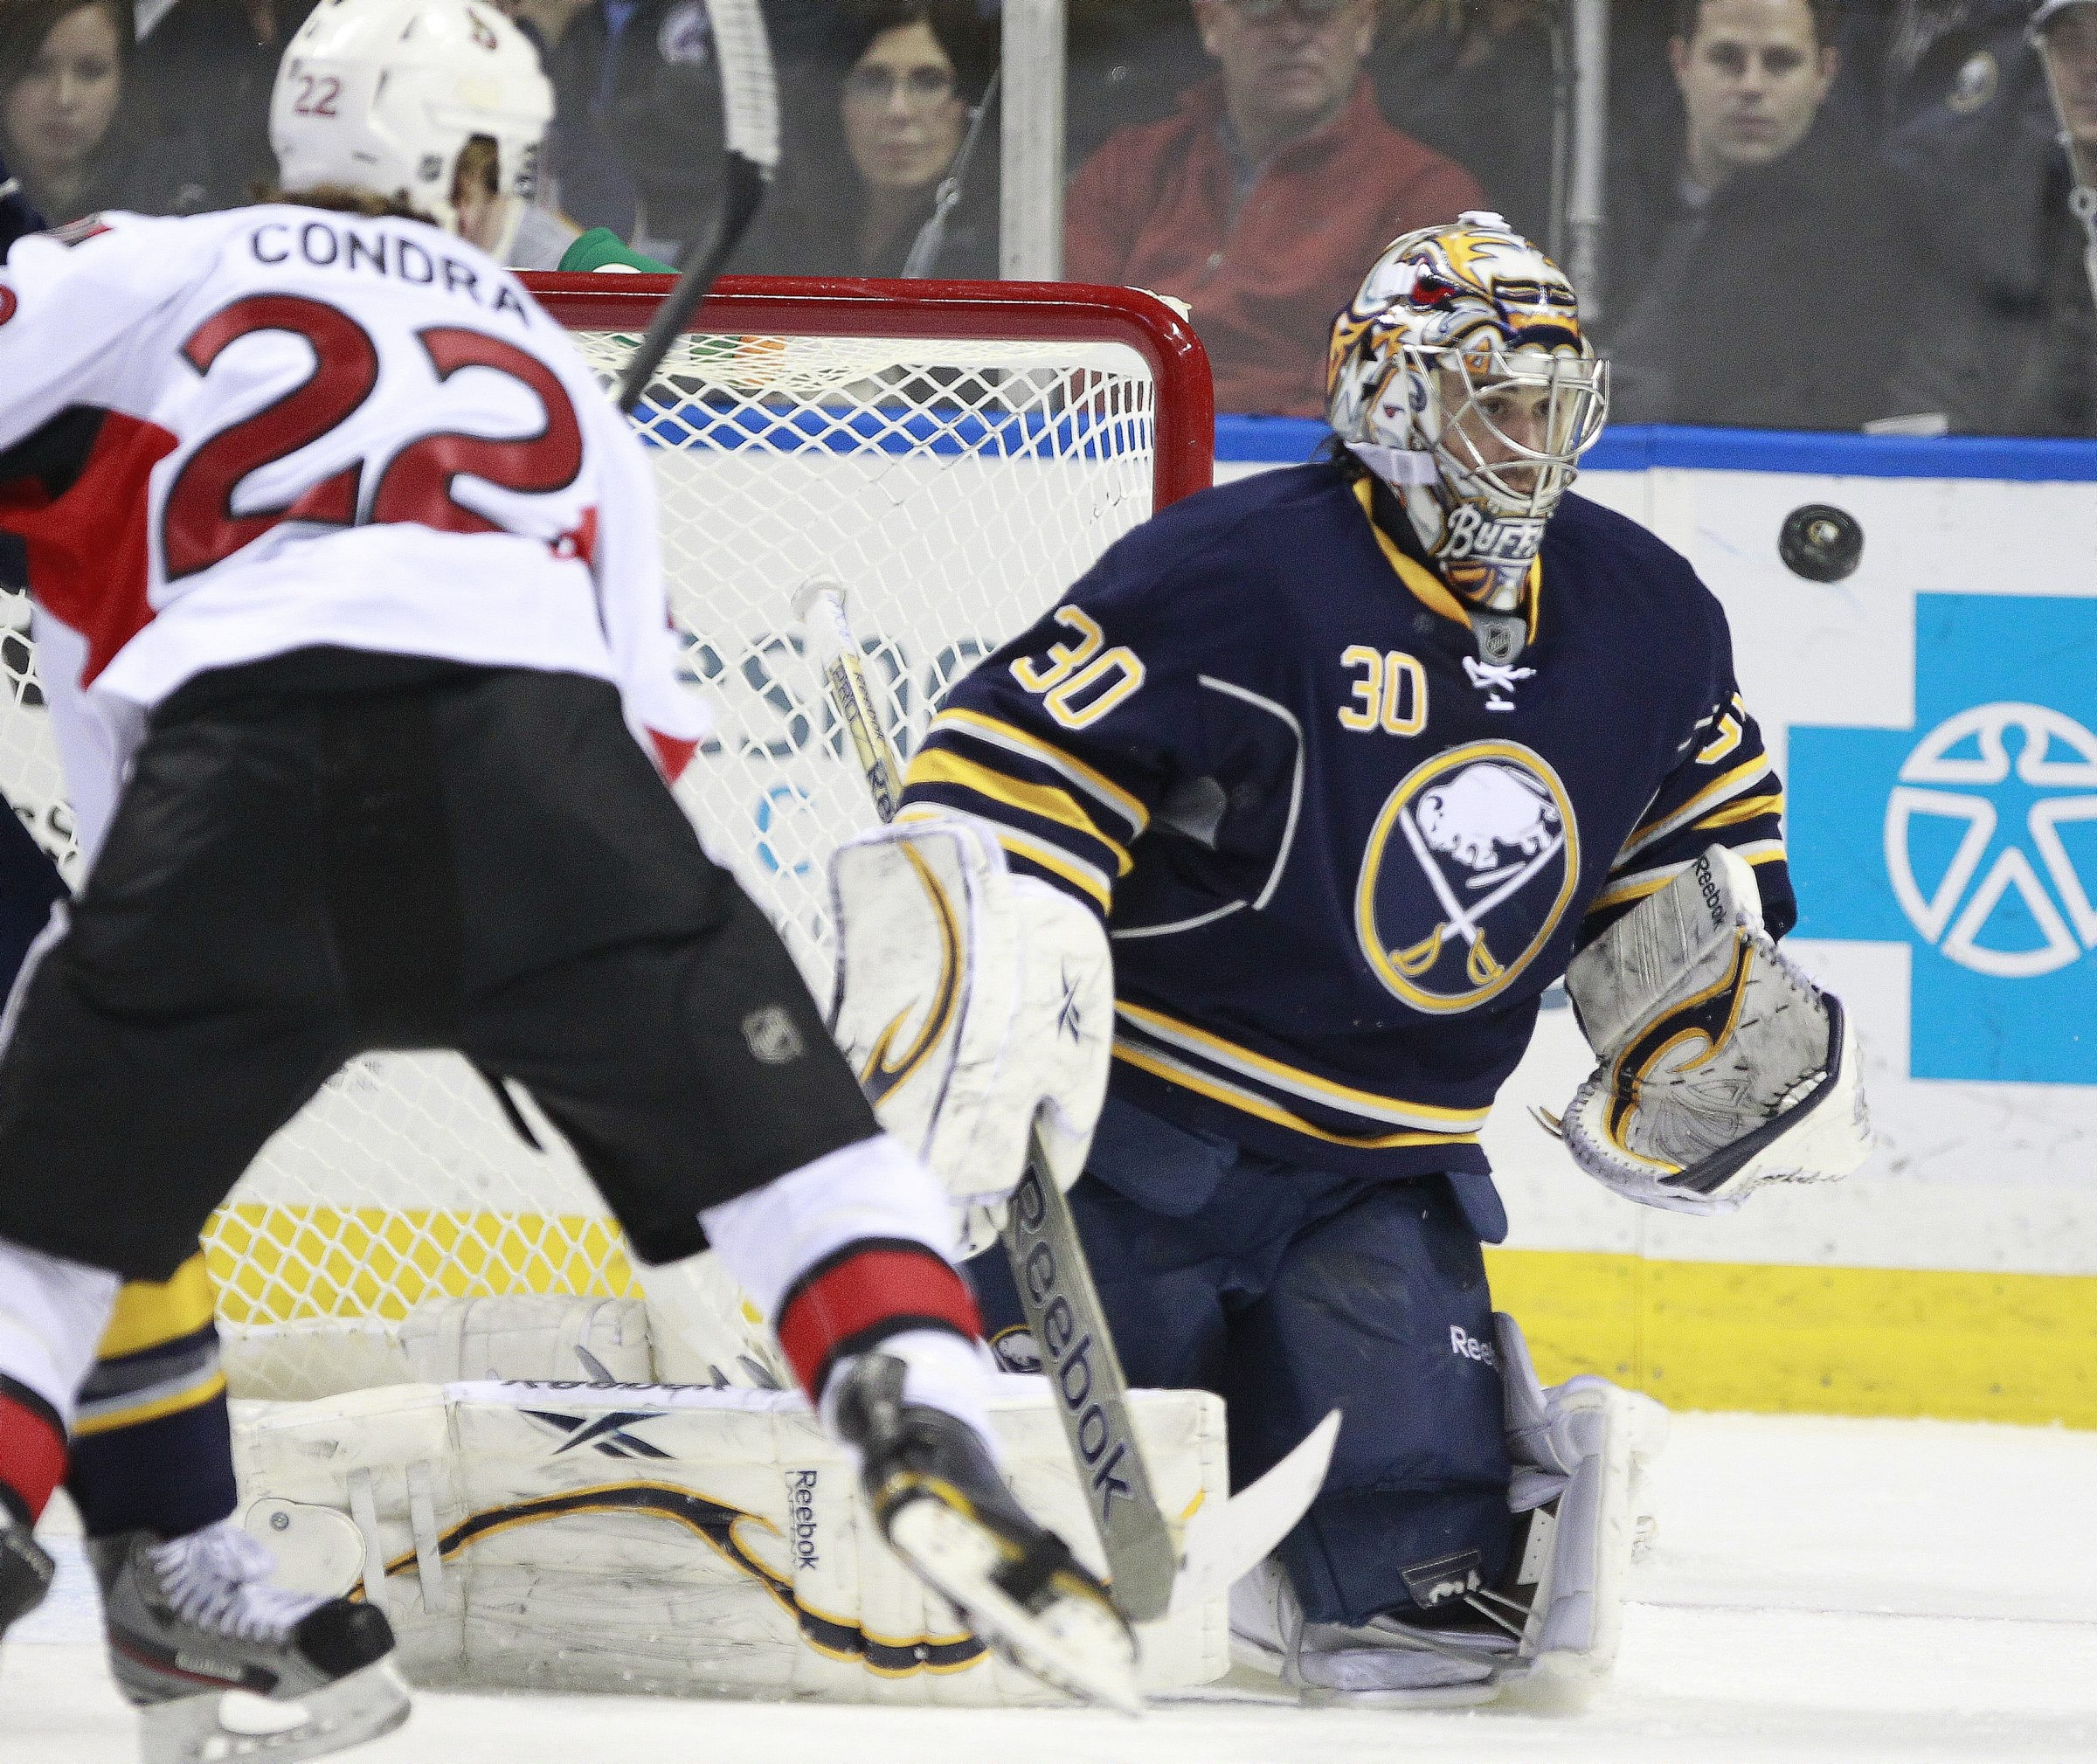 Buffalo Sabres goaltender, Ryan Miller (30), makes a first-period save during action against the Ottawa Senators at the First Niagara Center on Friday, April 5, 2013.  Harry Scull Jr./Buffalo News)